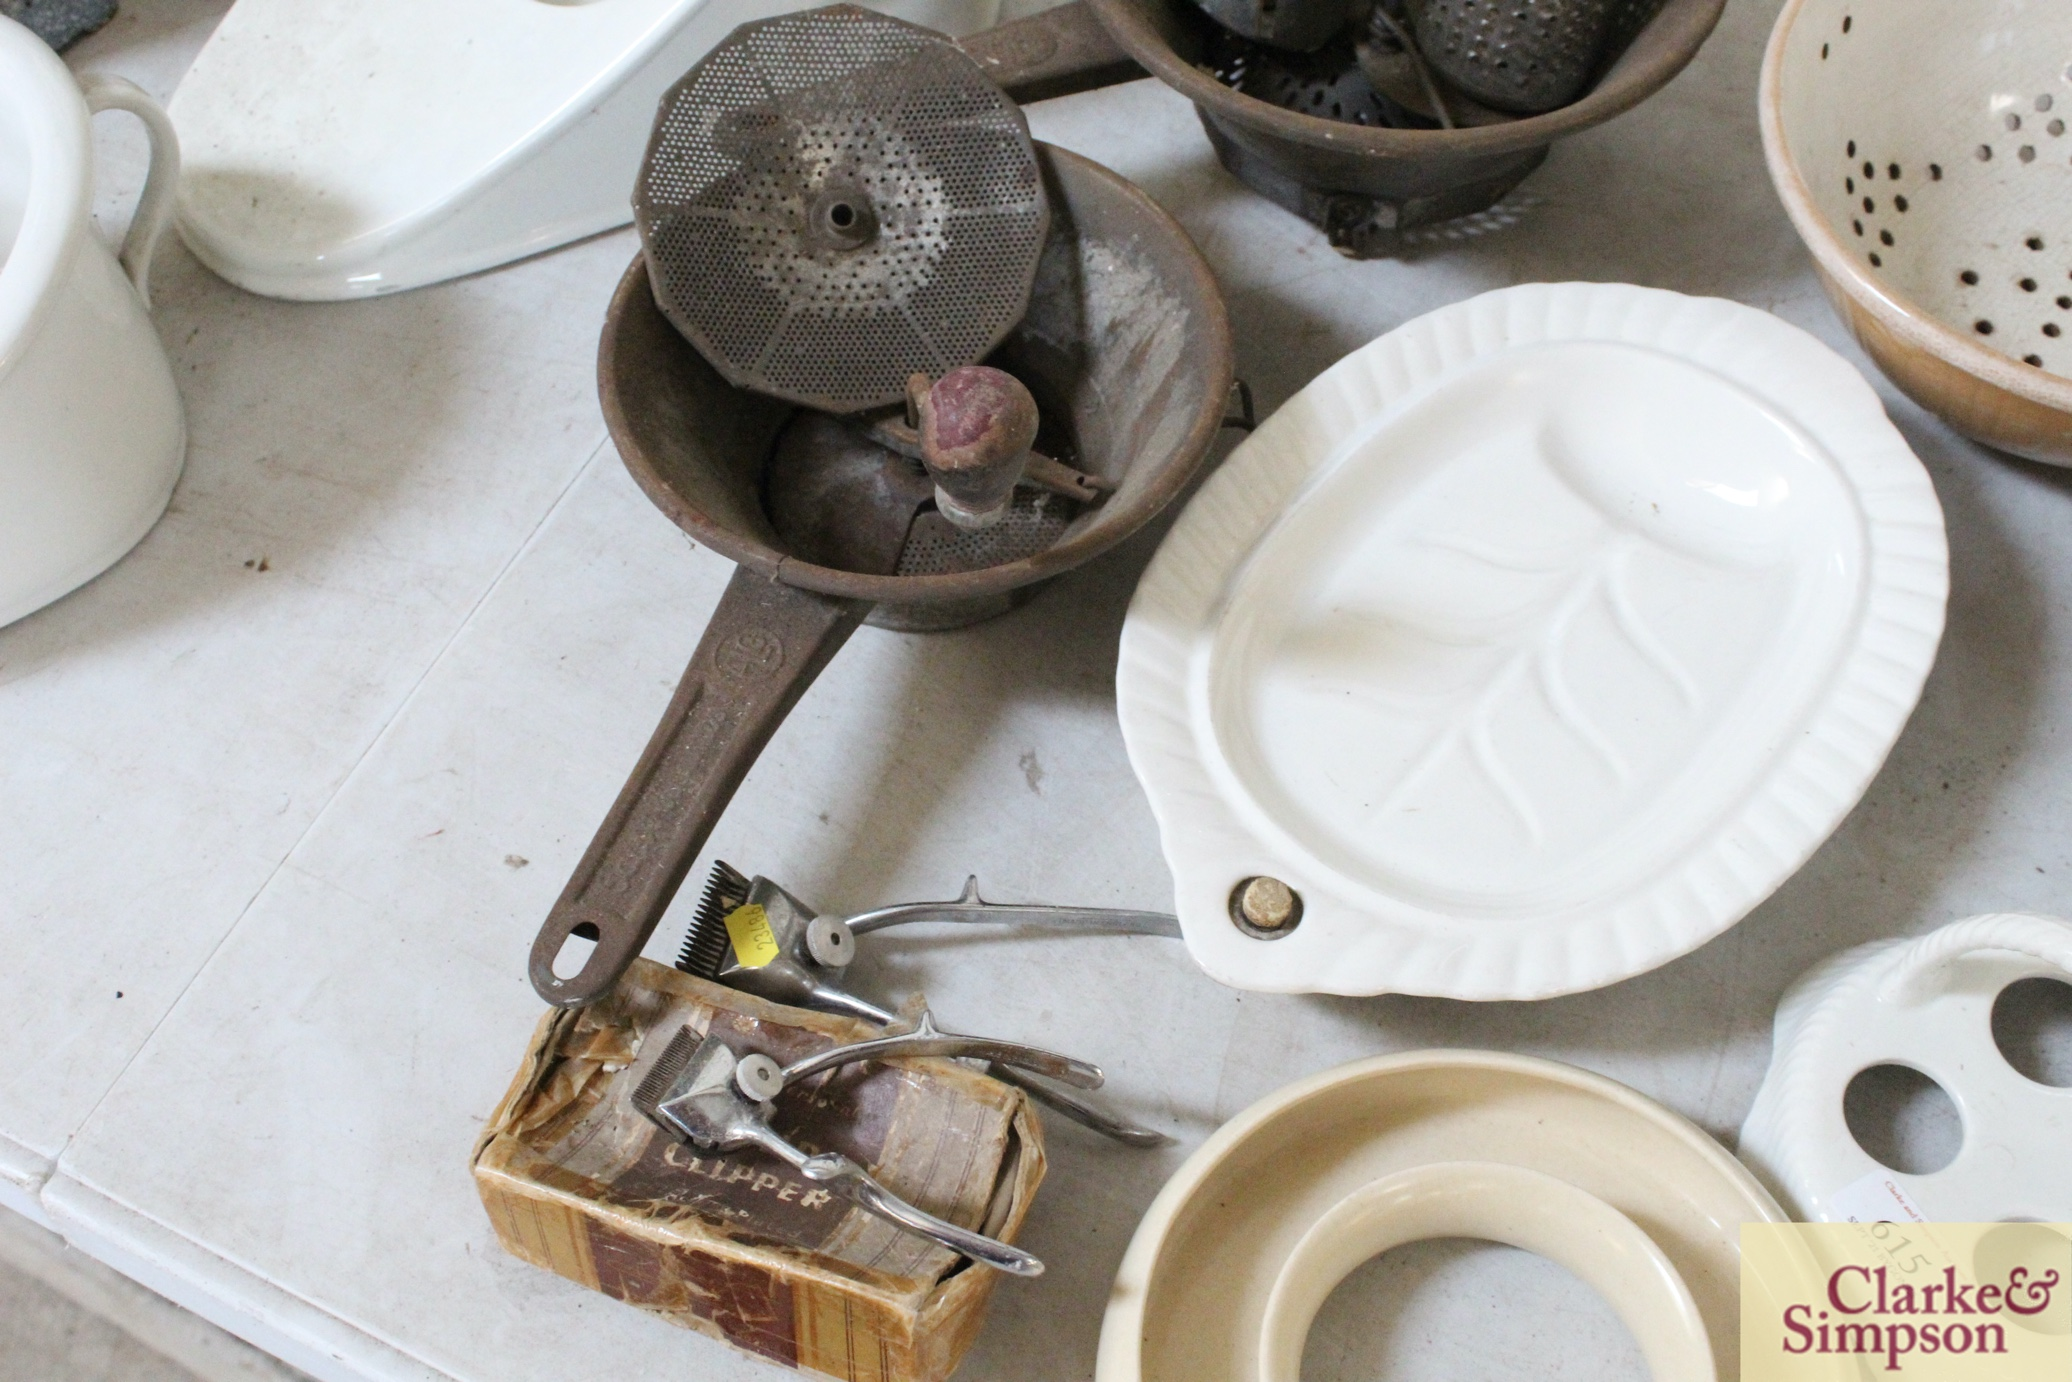 A quantity of various kitchenalia including a quic - Image 4 of 5